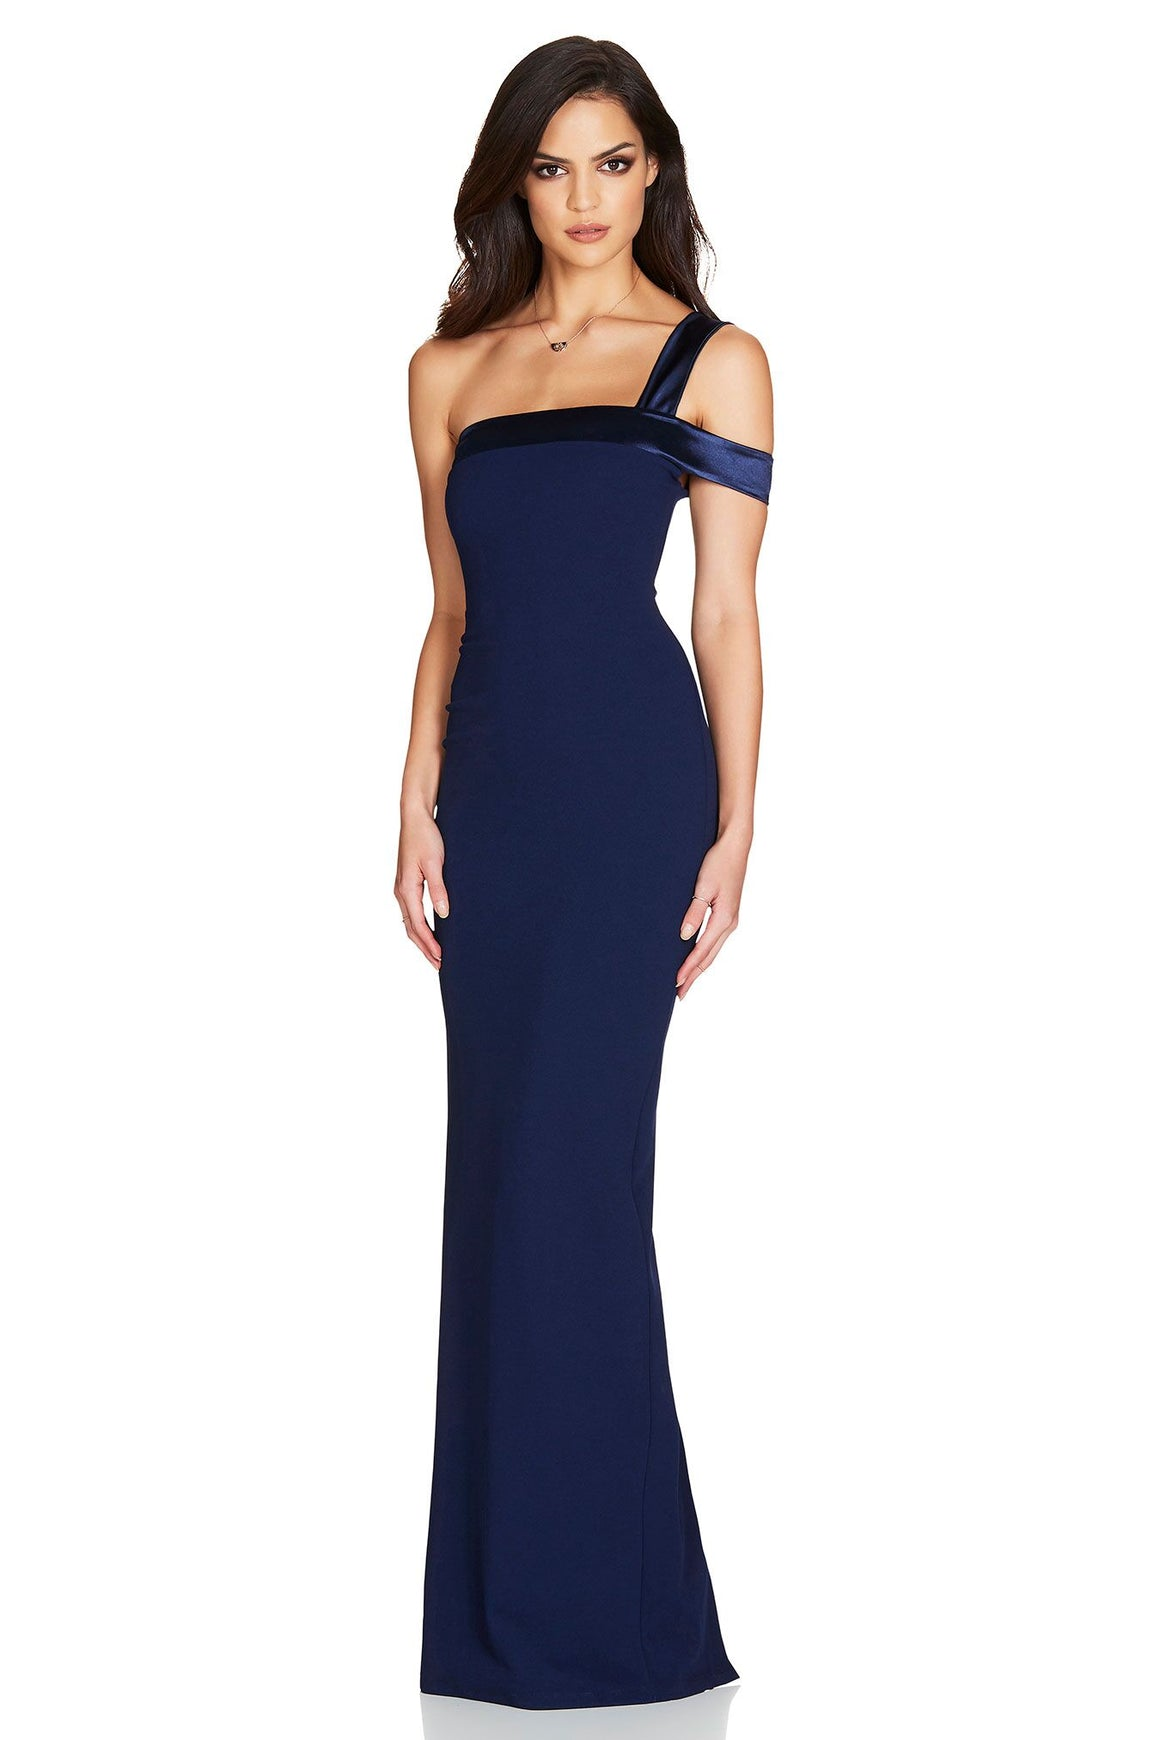 Alias Gown - Navy